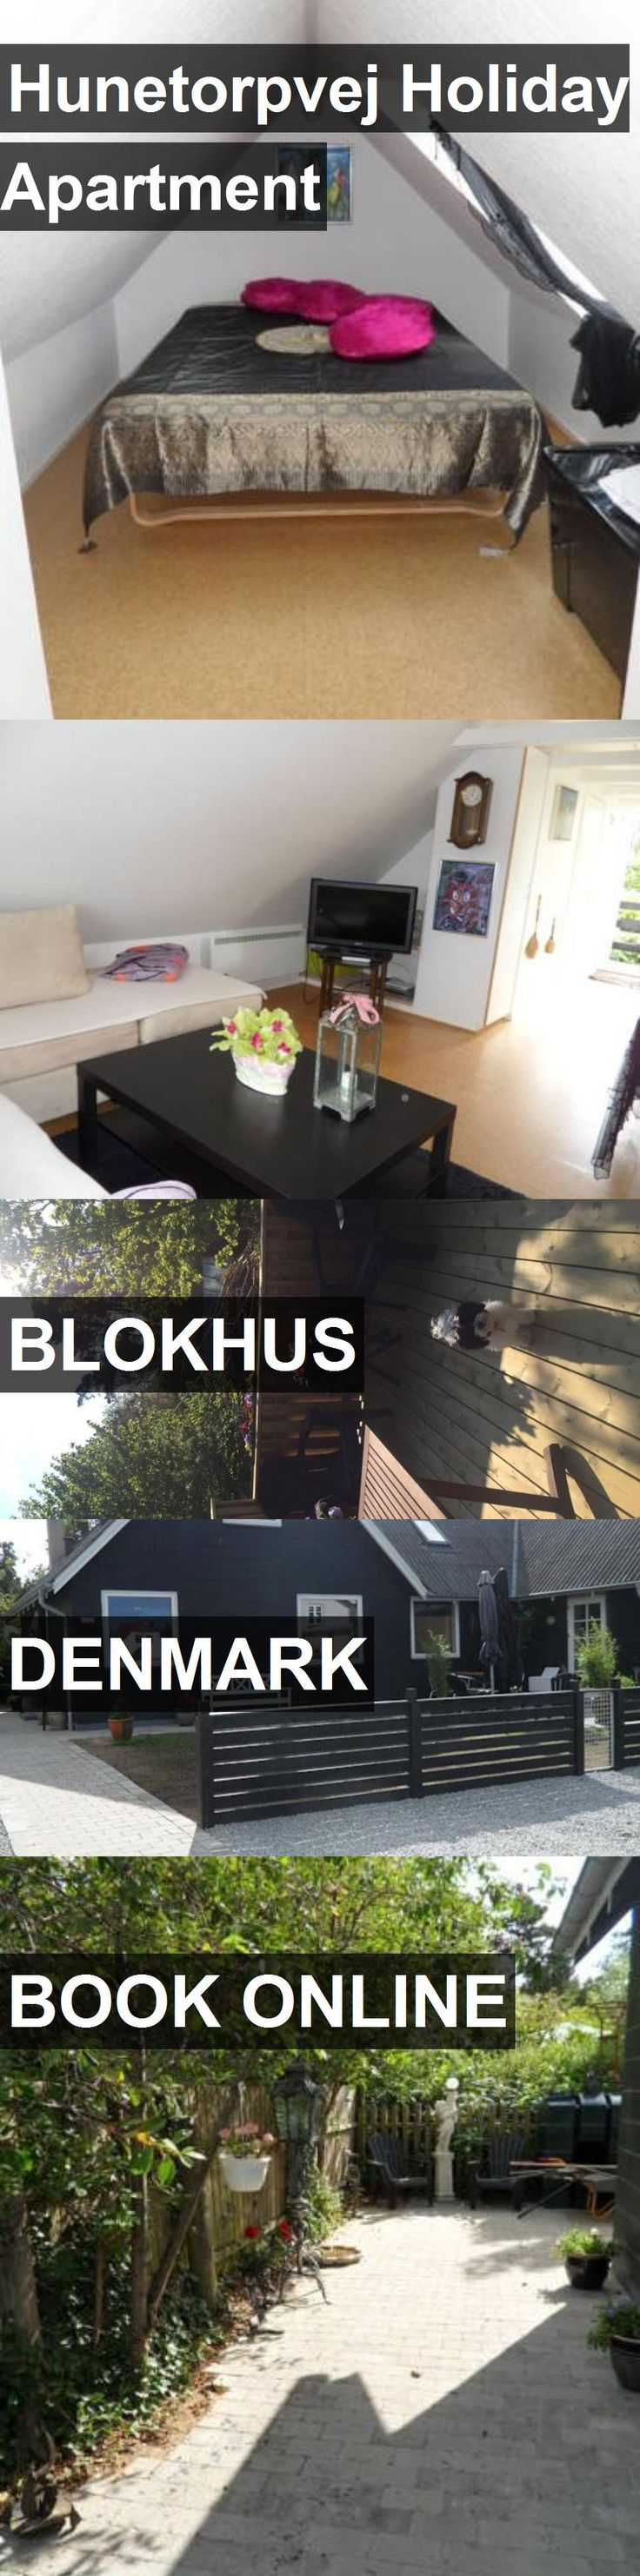 Hunetorpvej Holiday Apartment in Blokhus, Denmark. For more information, photos, reviews and best prices please follow the link. #Denmark #Blokhus #travel #vacation #apartment